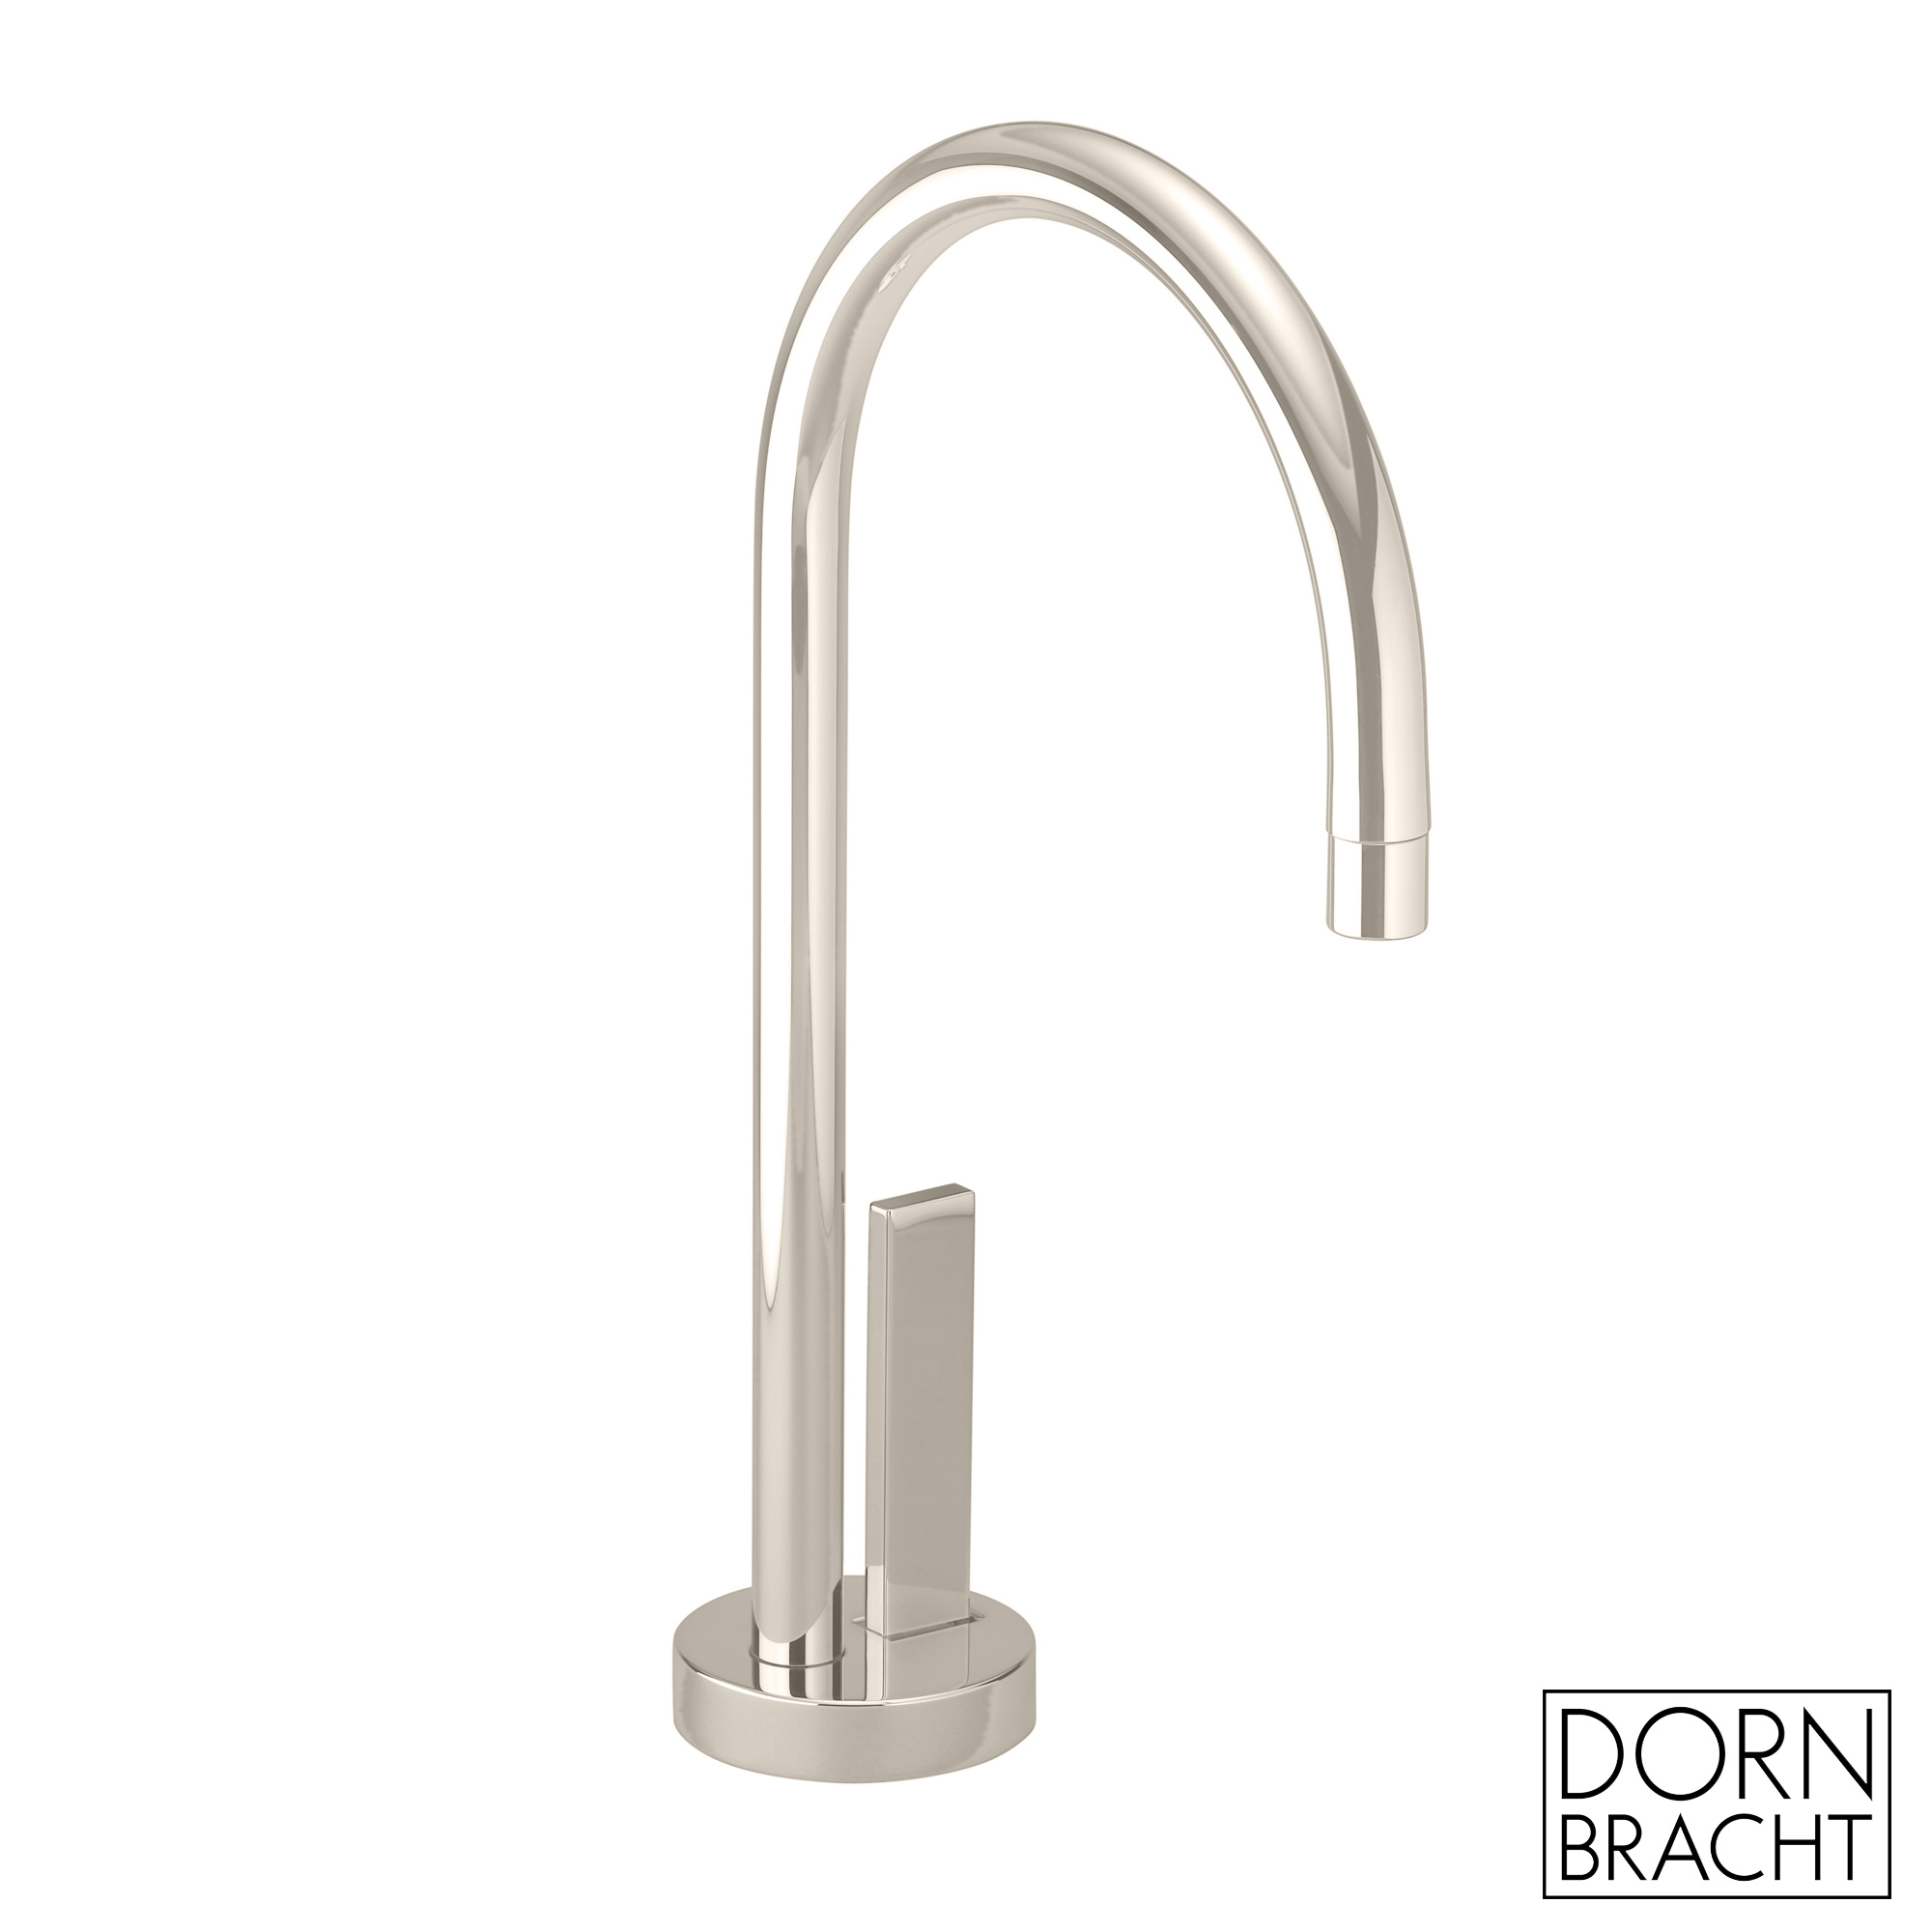 Dornbracht hot cold water dispenser kuchenarmatur platin for Dornbracht küchenarmatur